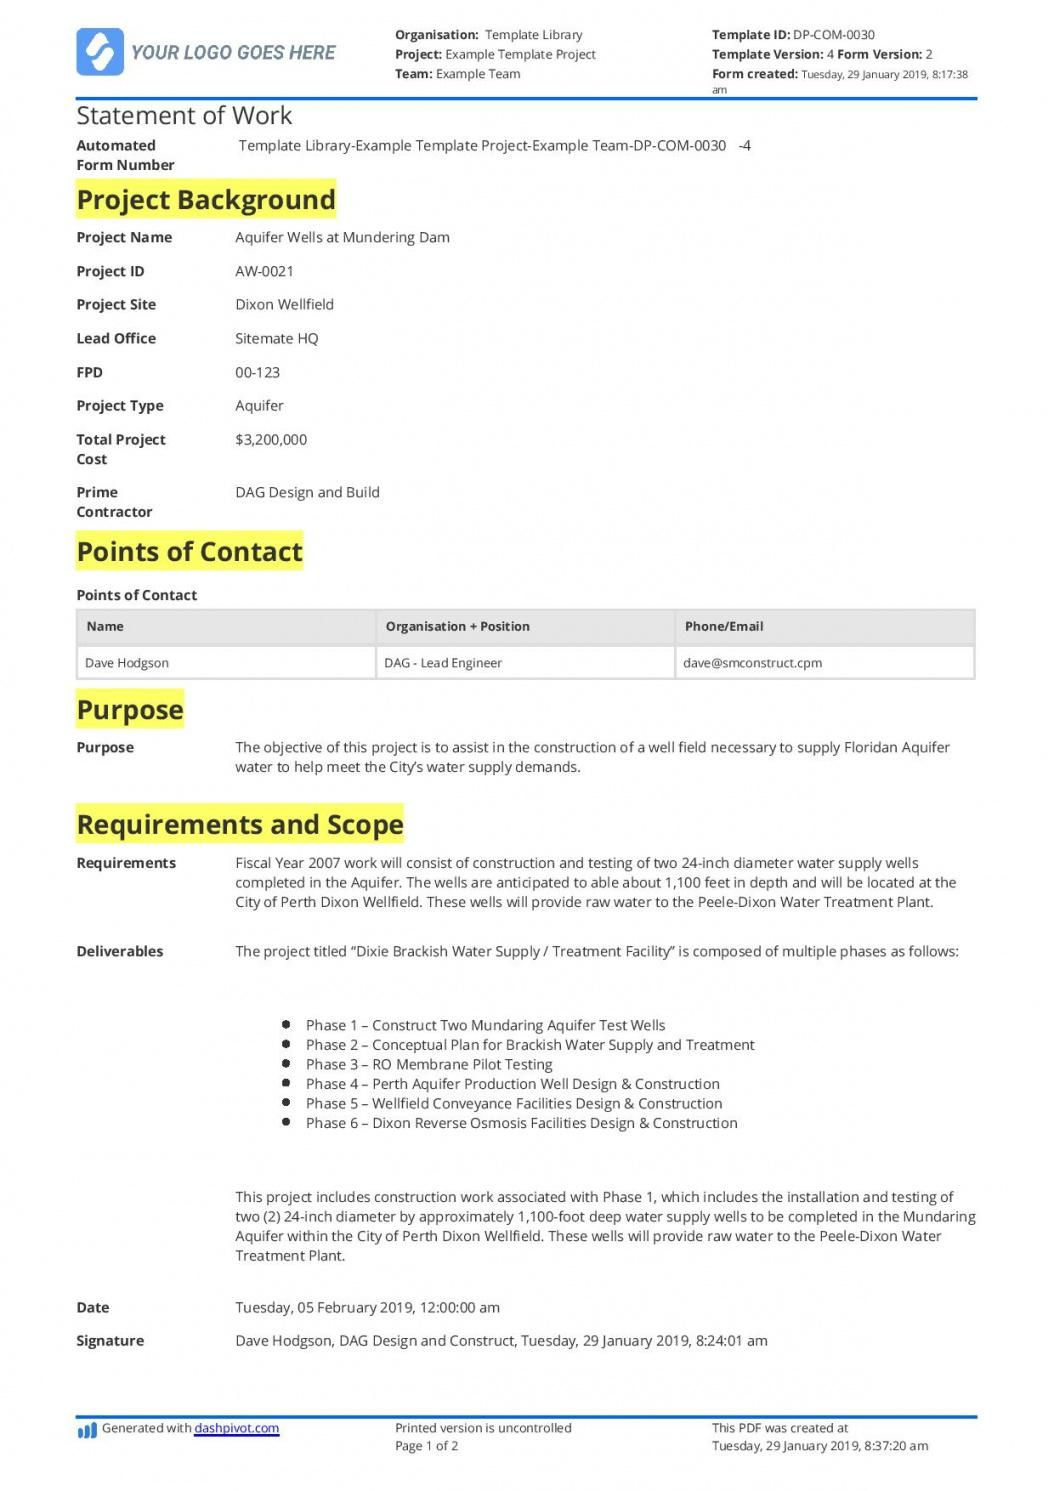 Browse Our Example Of Contractor Statement Of Work Template For Free Statement Of Work Statement Template Cover Page Template Word Free statement of work template